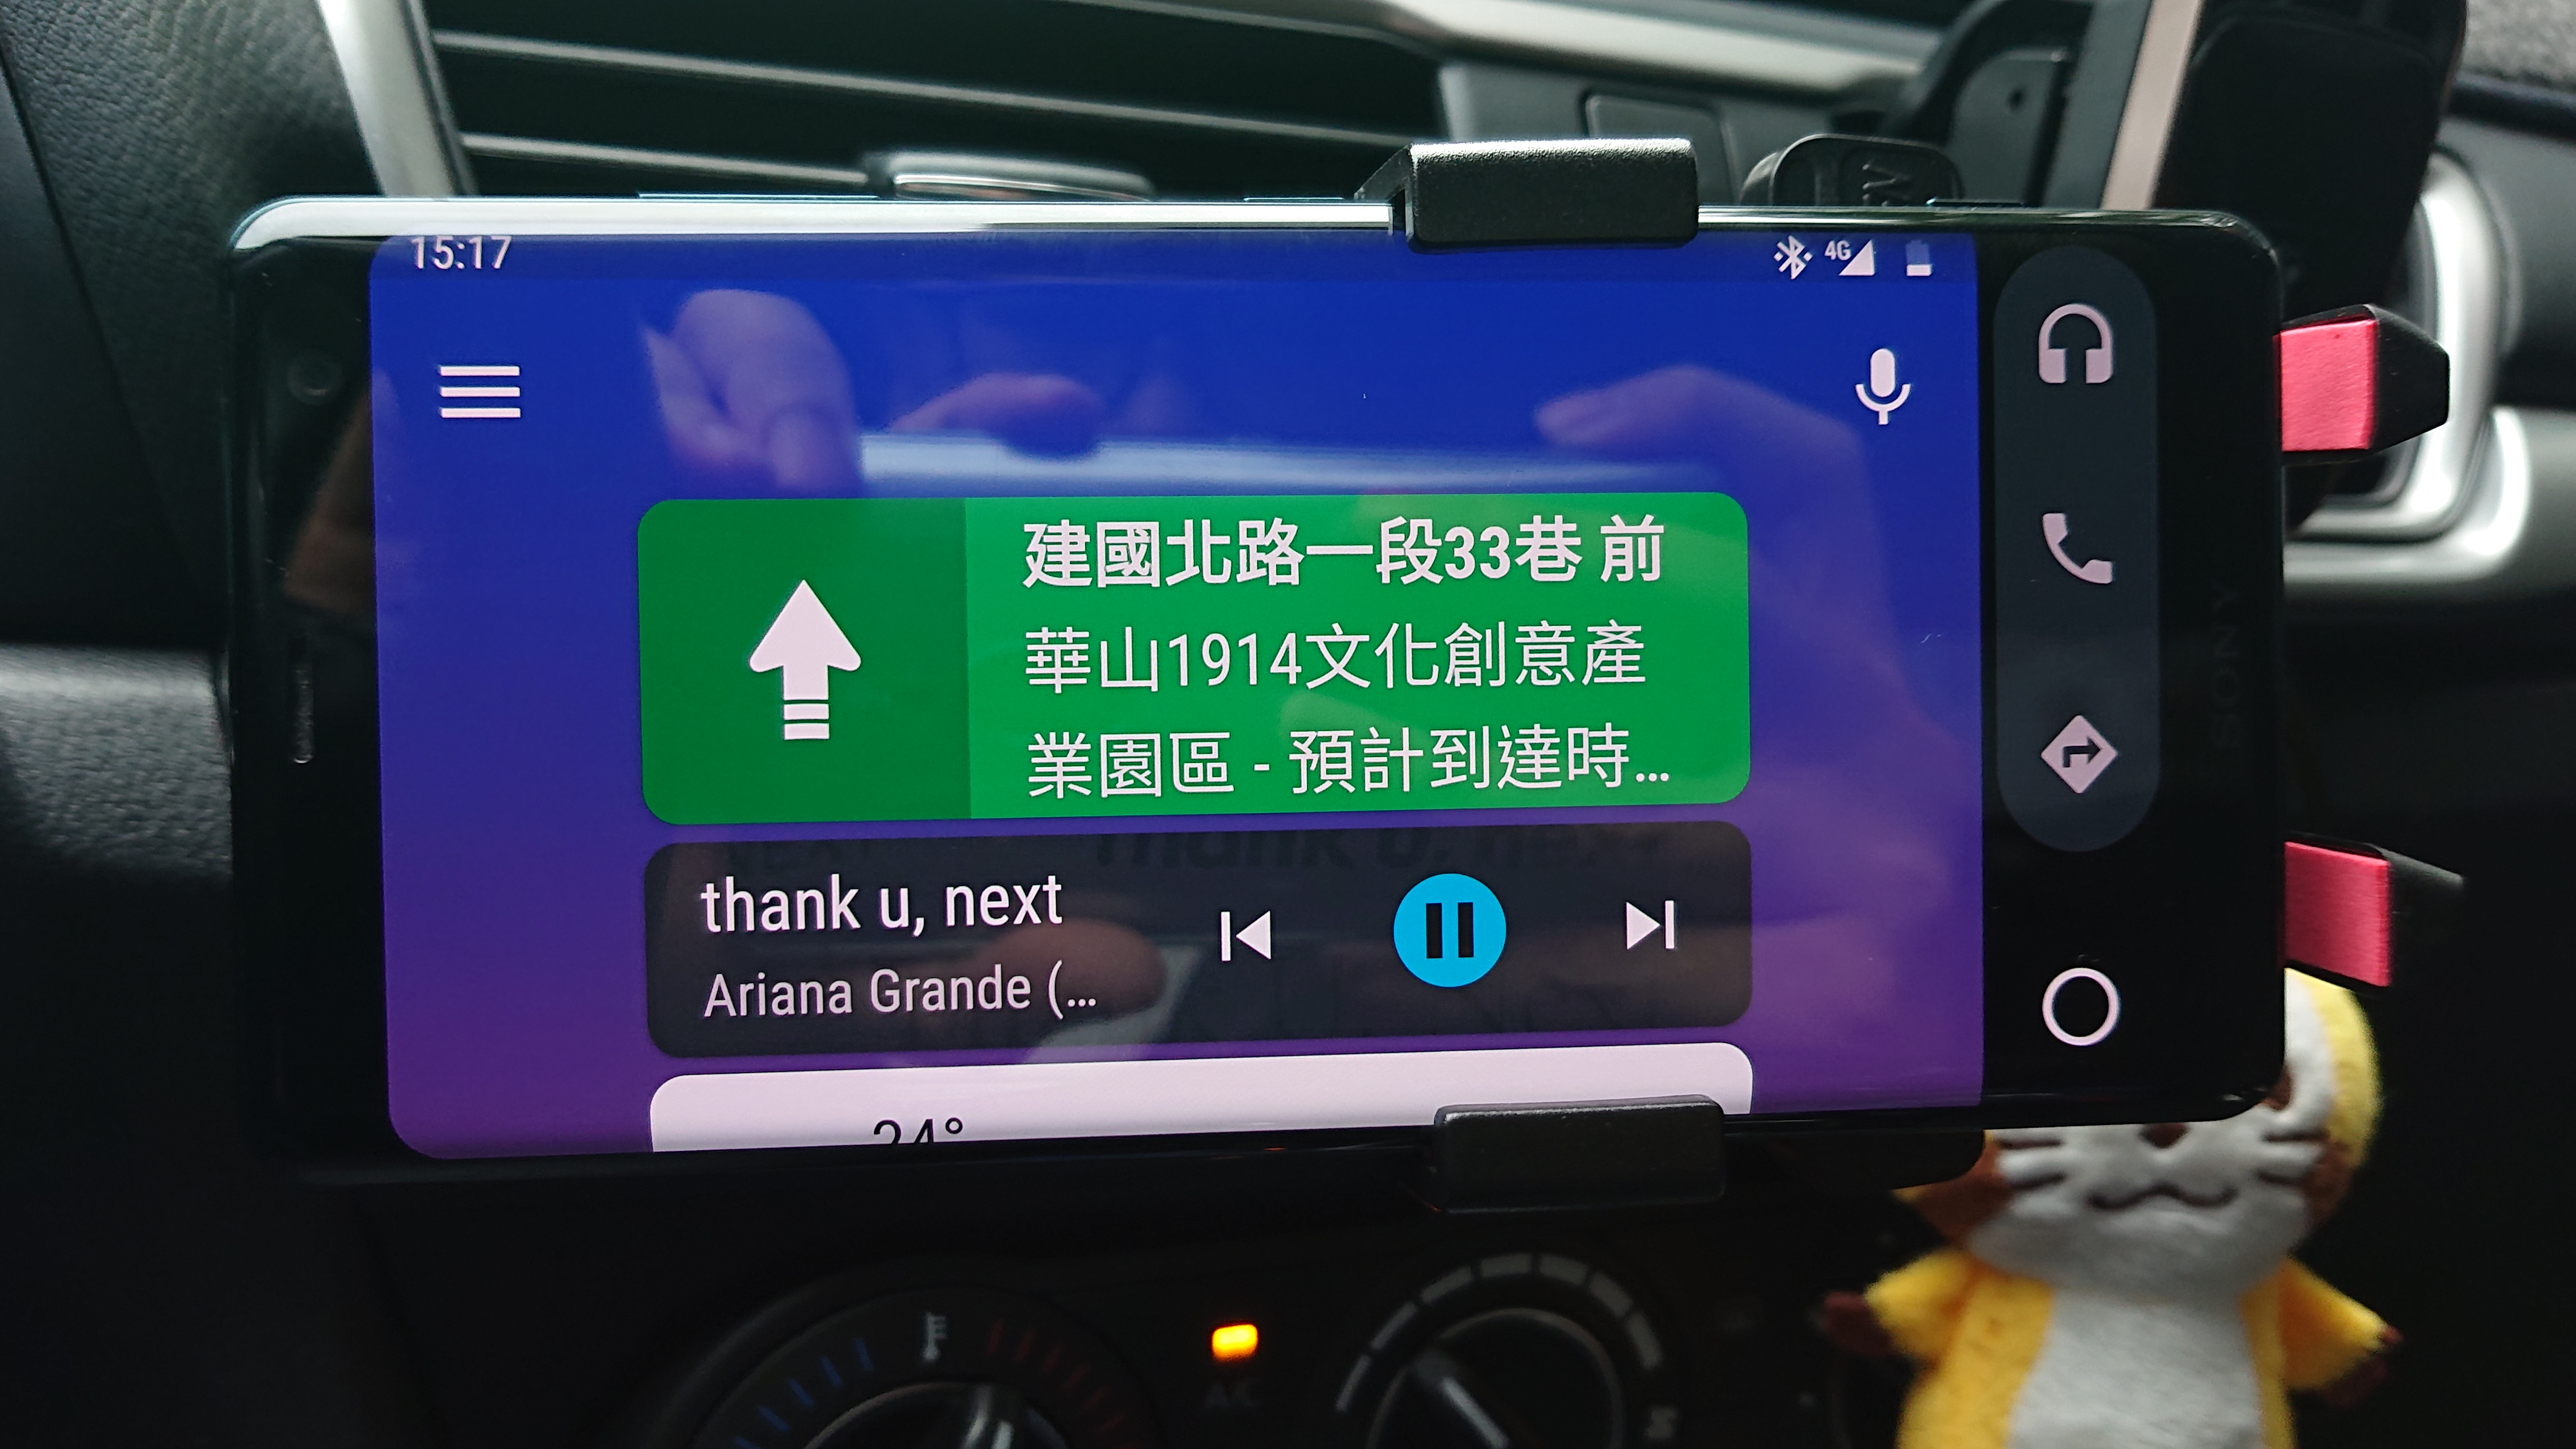 「Android應用」 Android Auto 讓行車更安心的行車模式 - 6